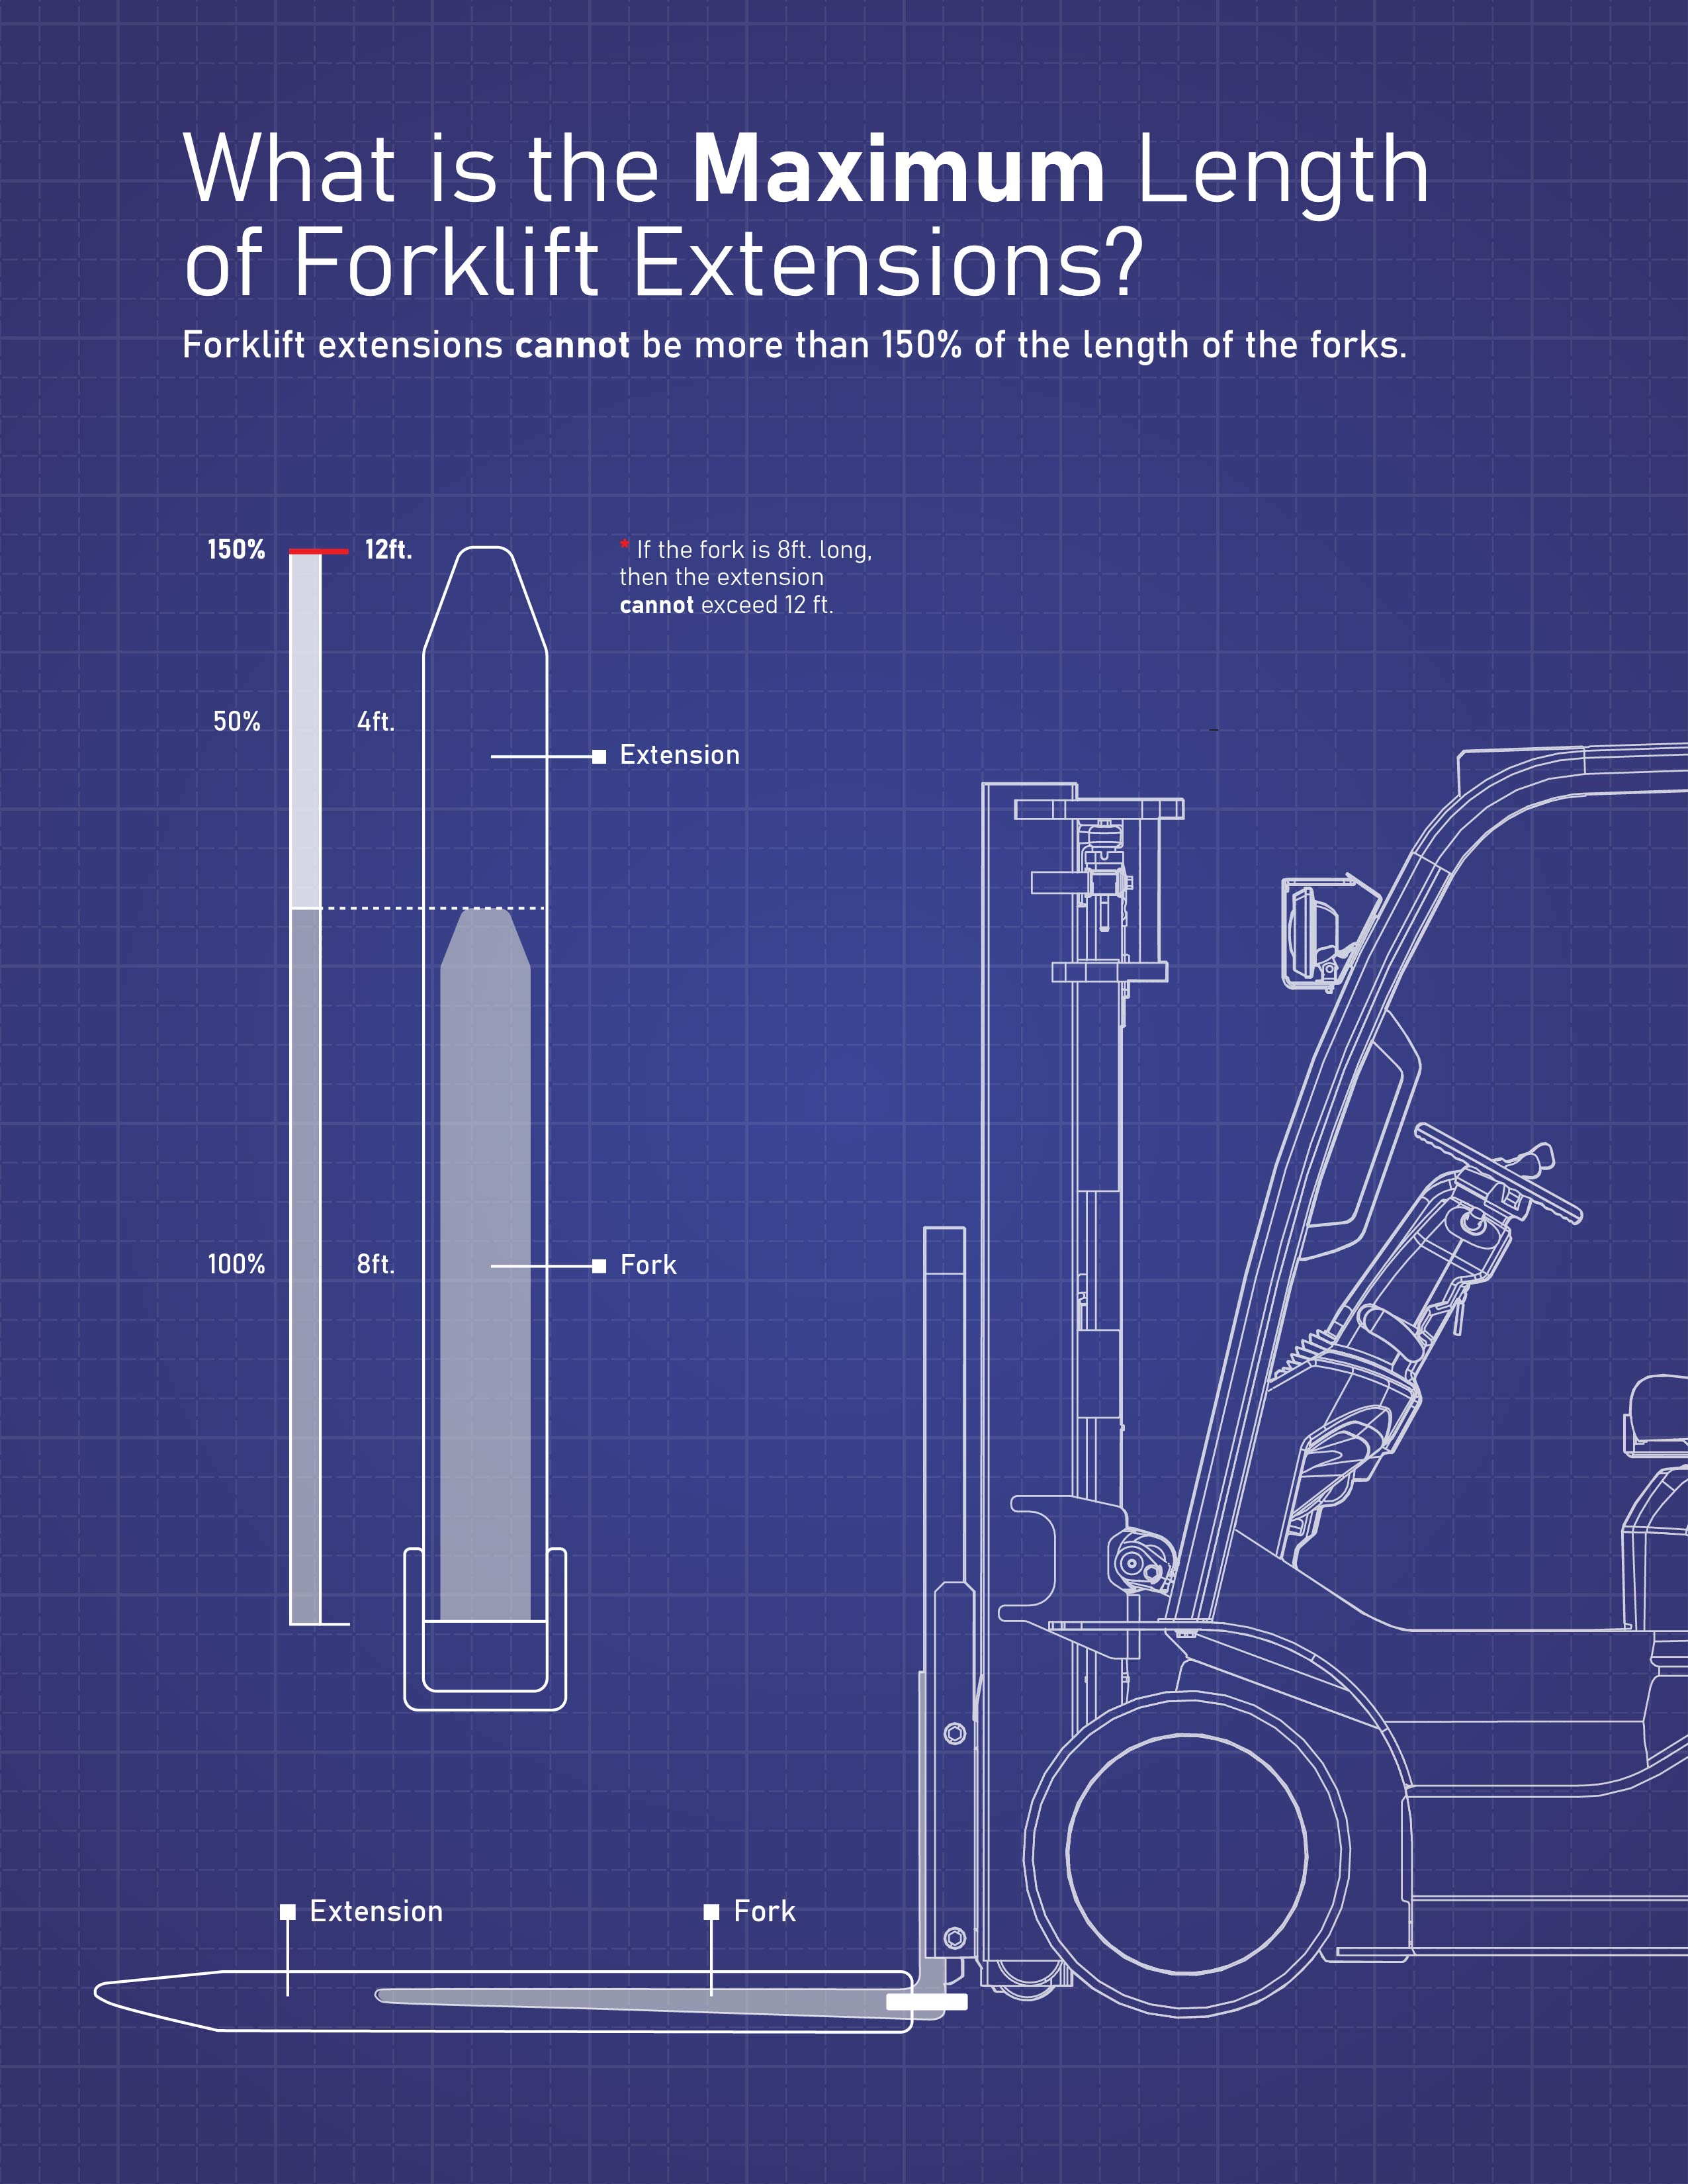 What is the maximum length of Forklift Extensions?